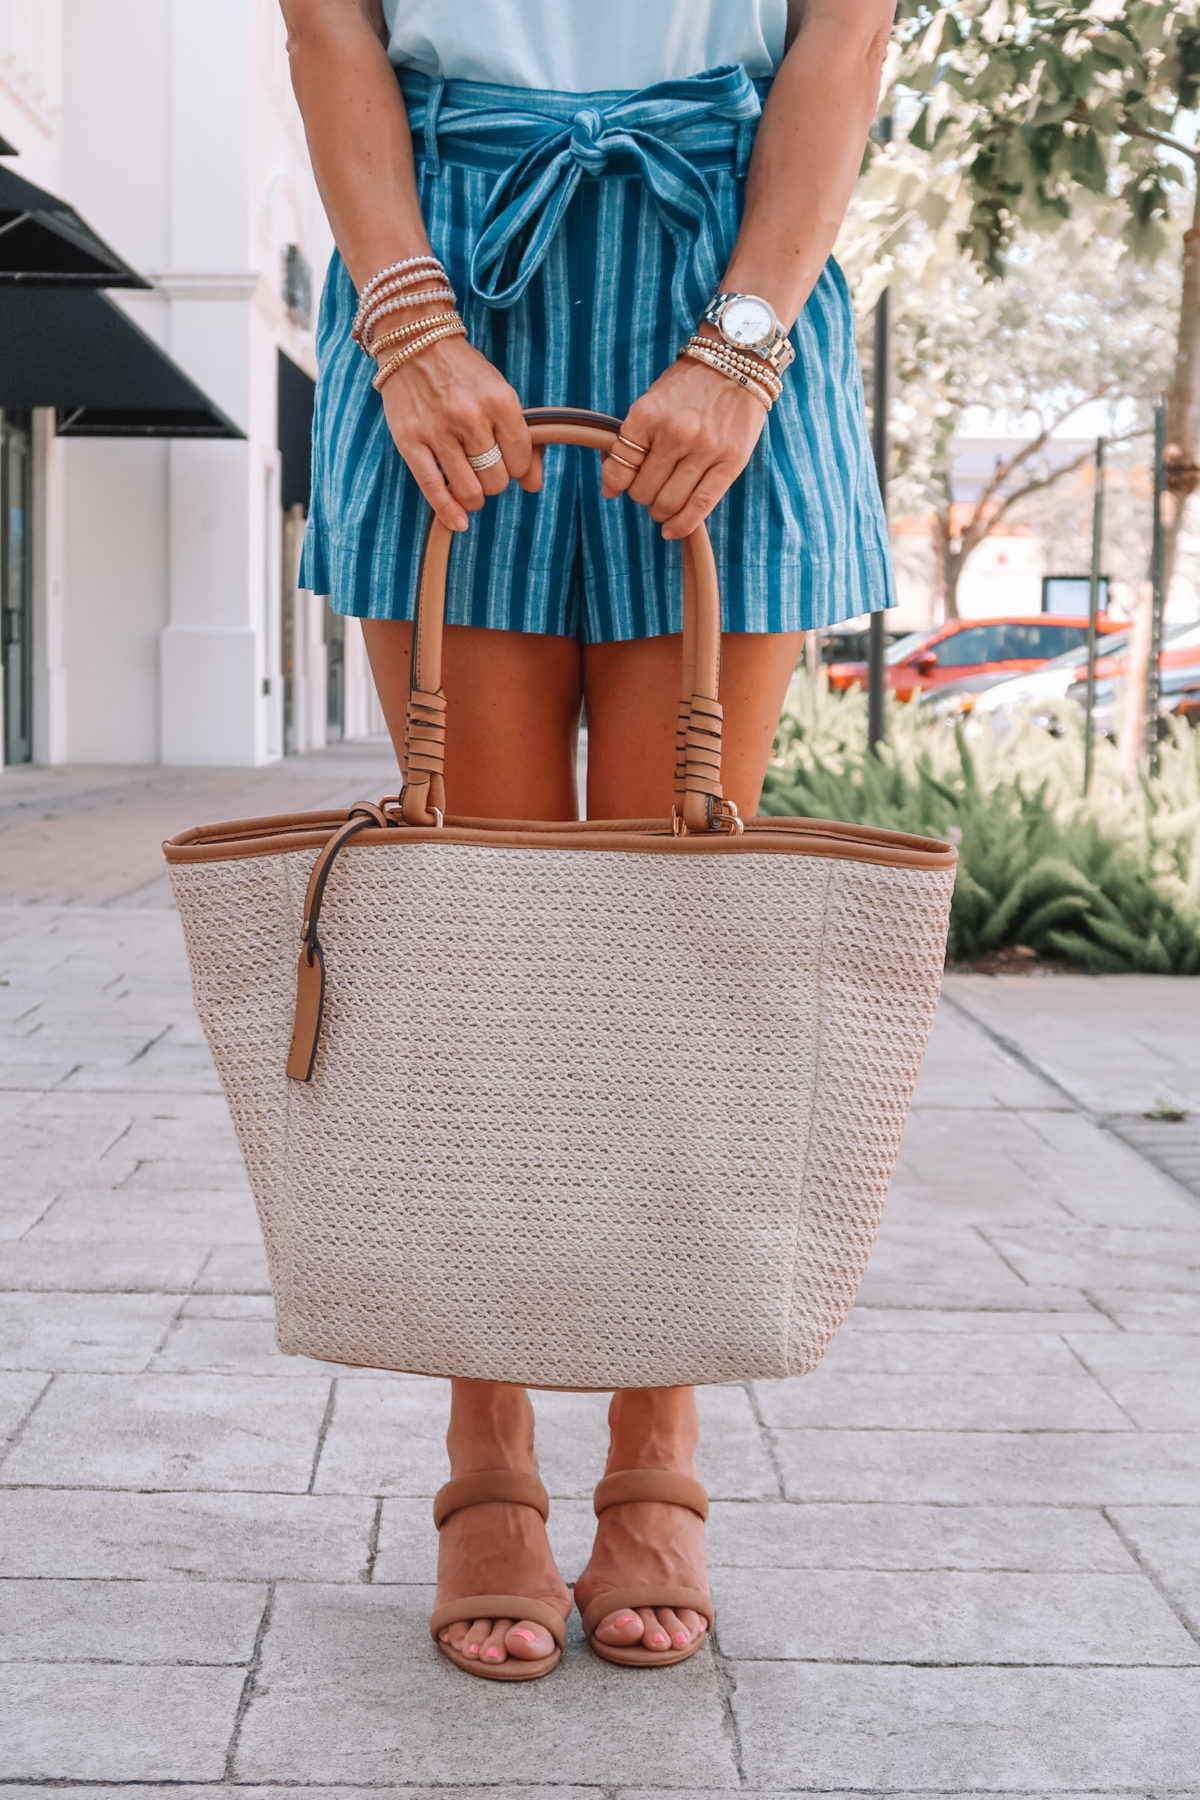 Light Blue Top, Blue Stripe Tie Waist Shorts, Sole Society Woven Tote Bag, Sandals